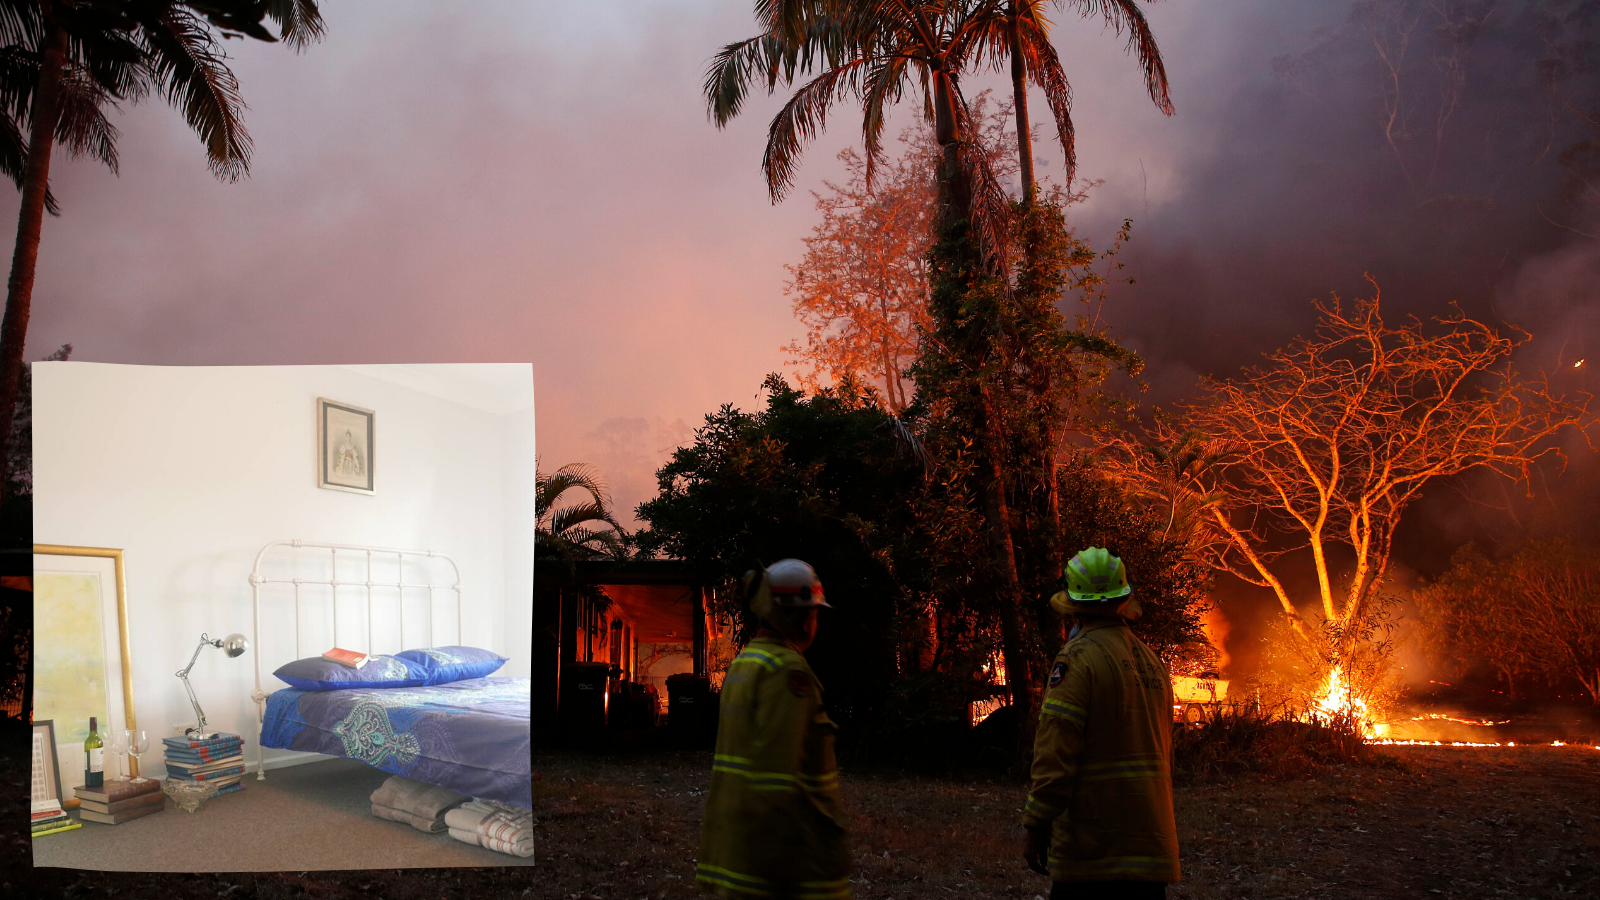 Airbnb hosts are giving free rooms to bushfire victims